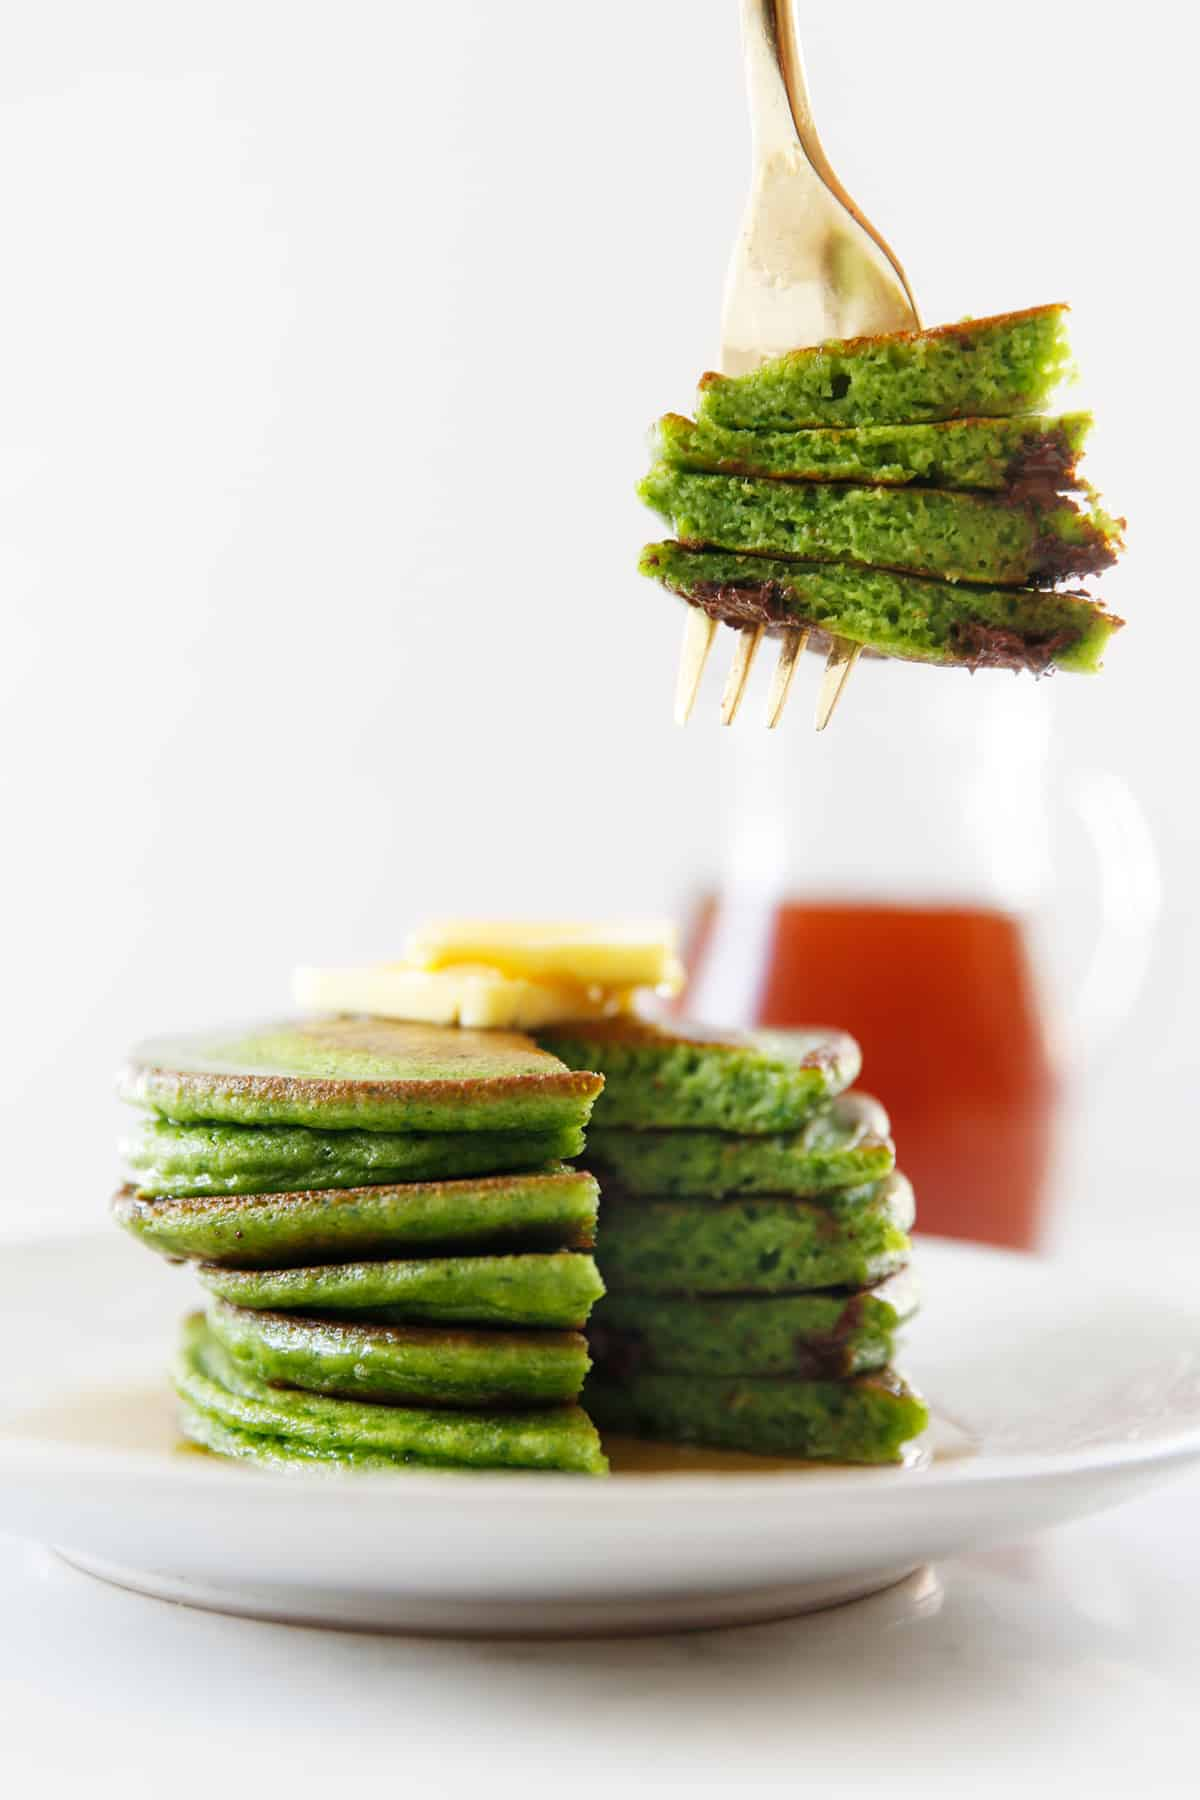 A forkful of spinach pancakes with chocolate chips.